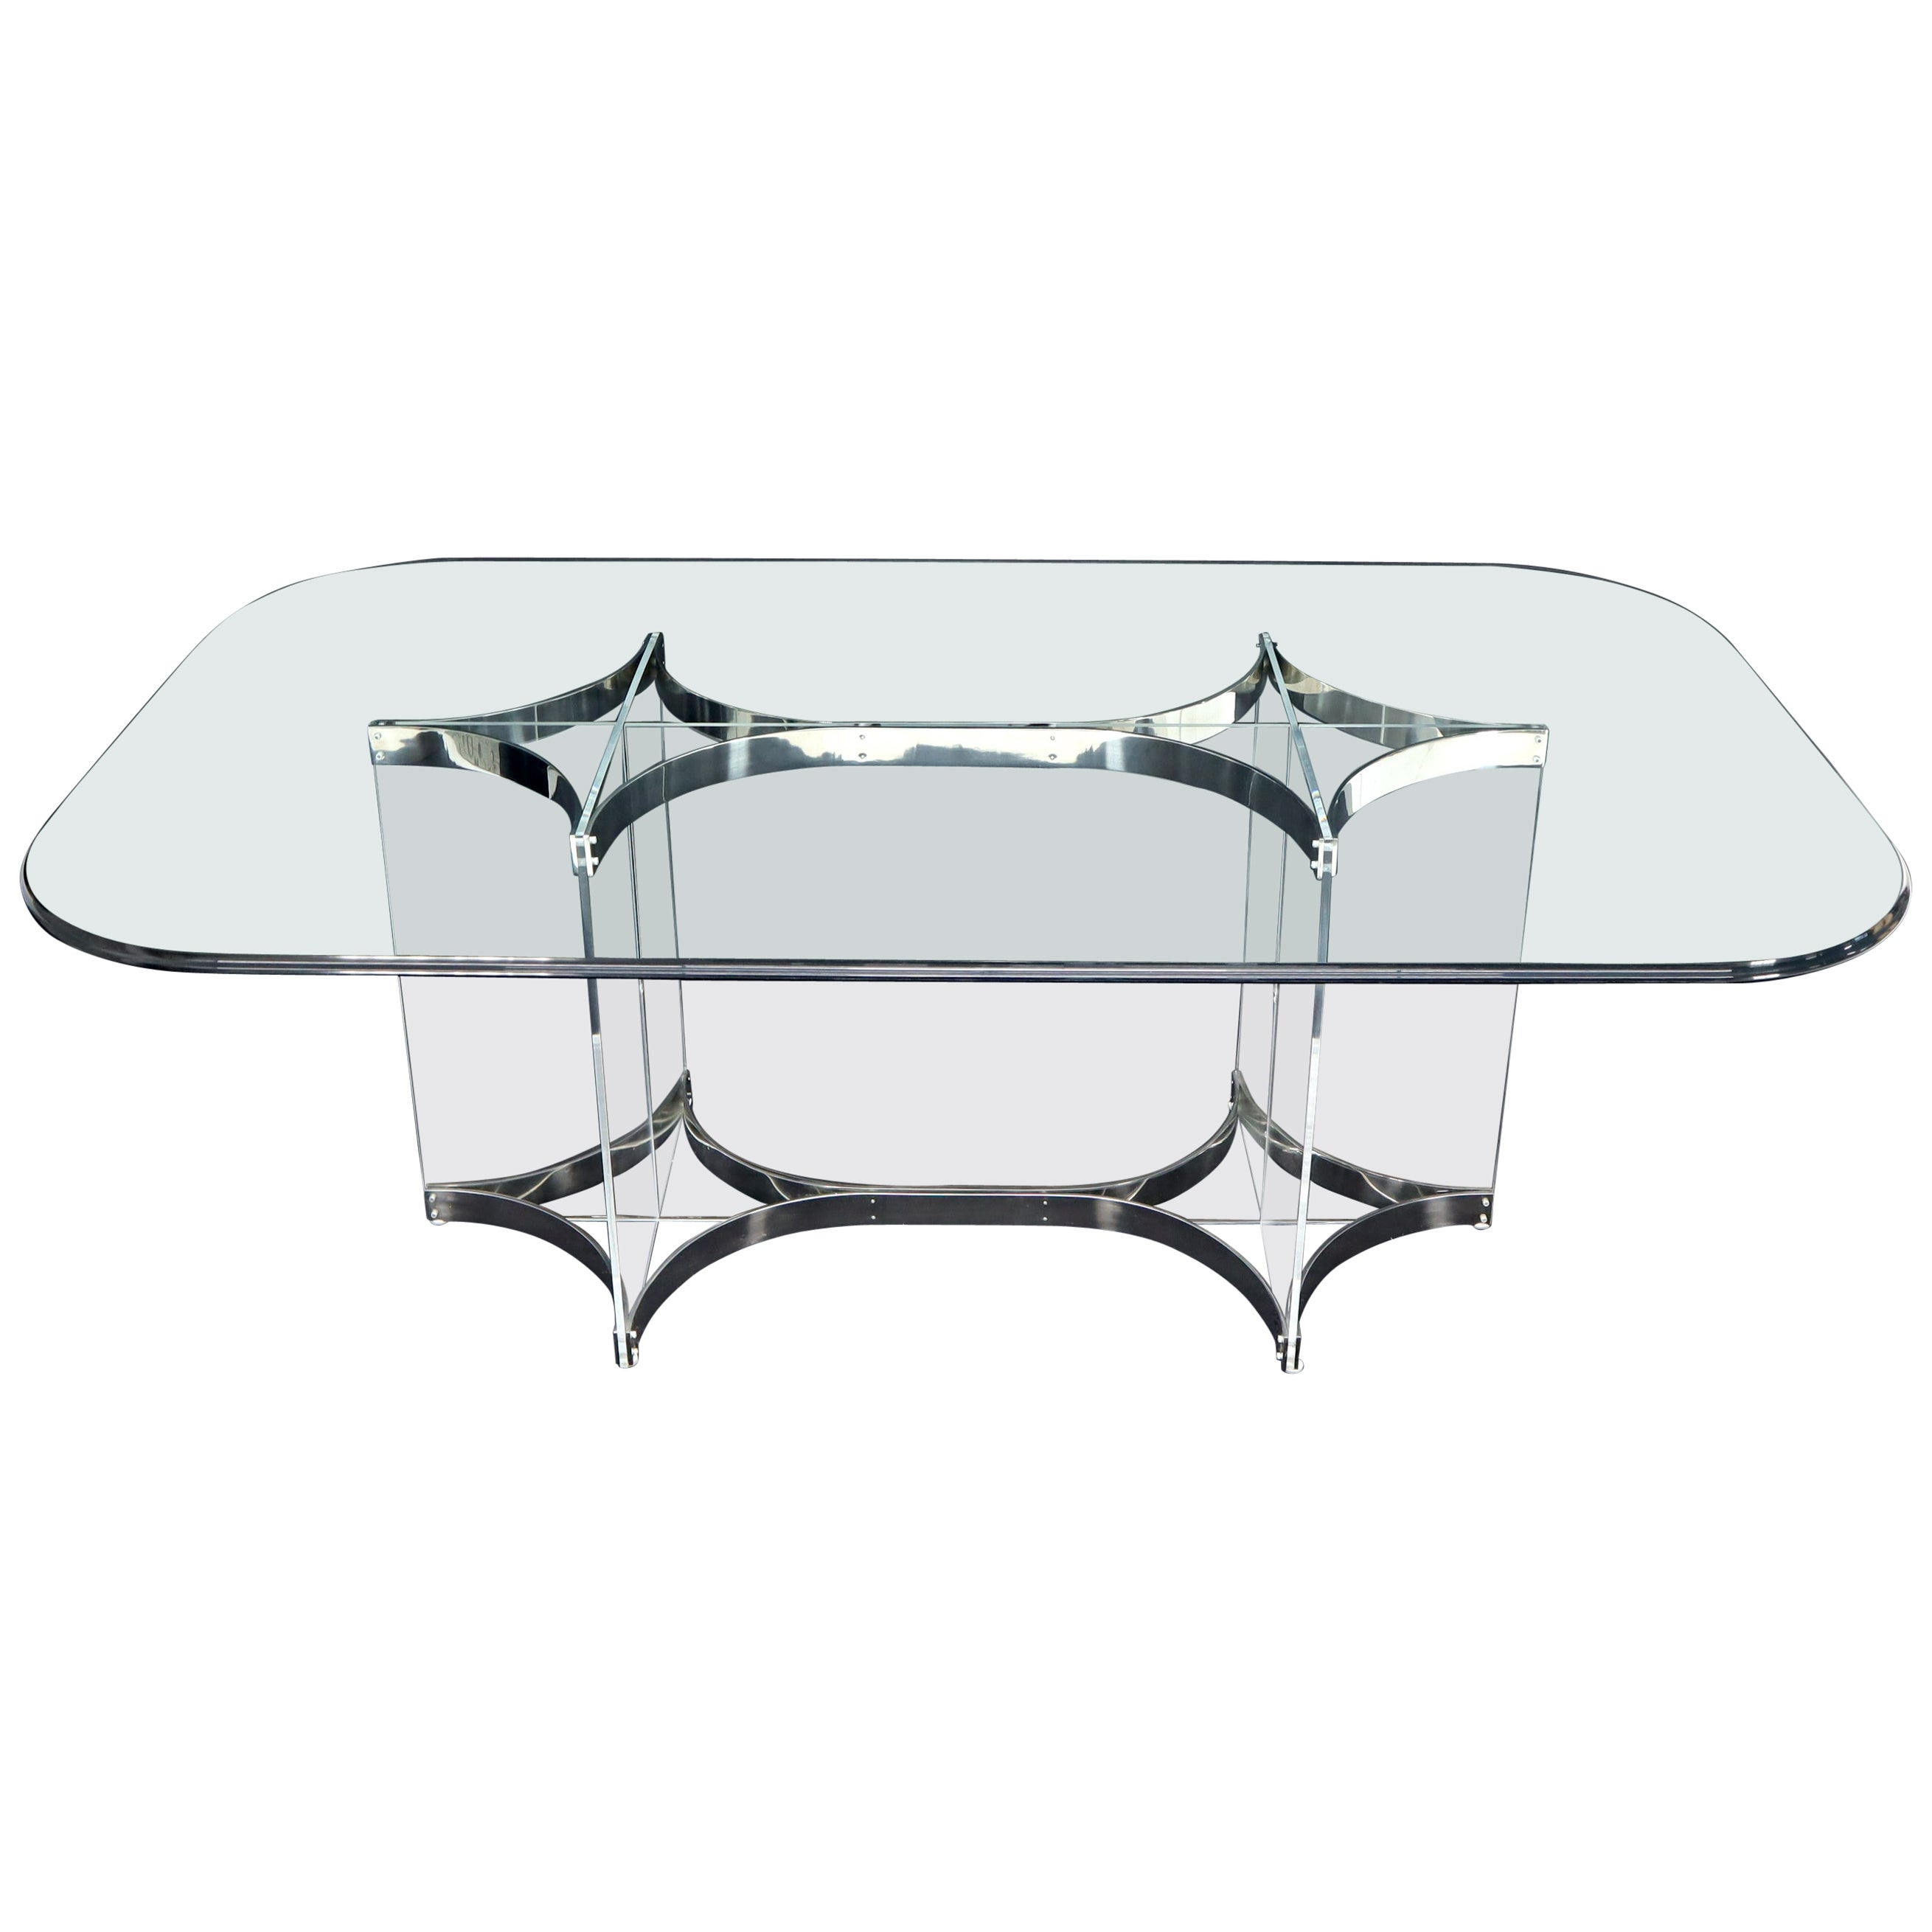 Large Glass Top Lucite & Stainless Base Rectangle Dining Table w/ Rounded Corner